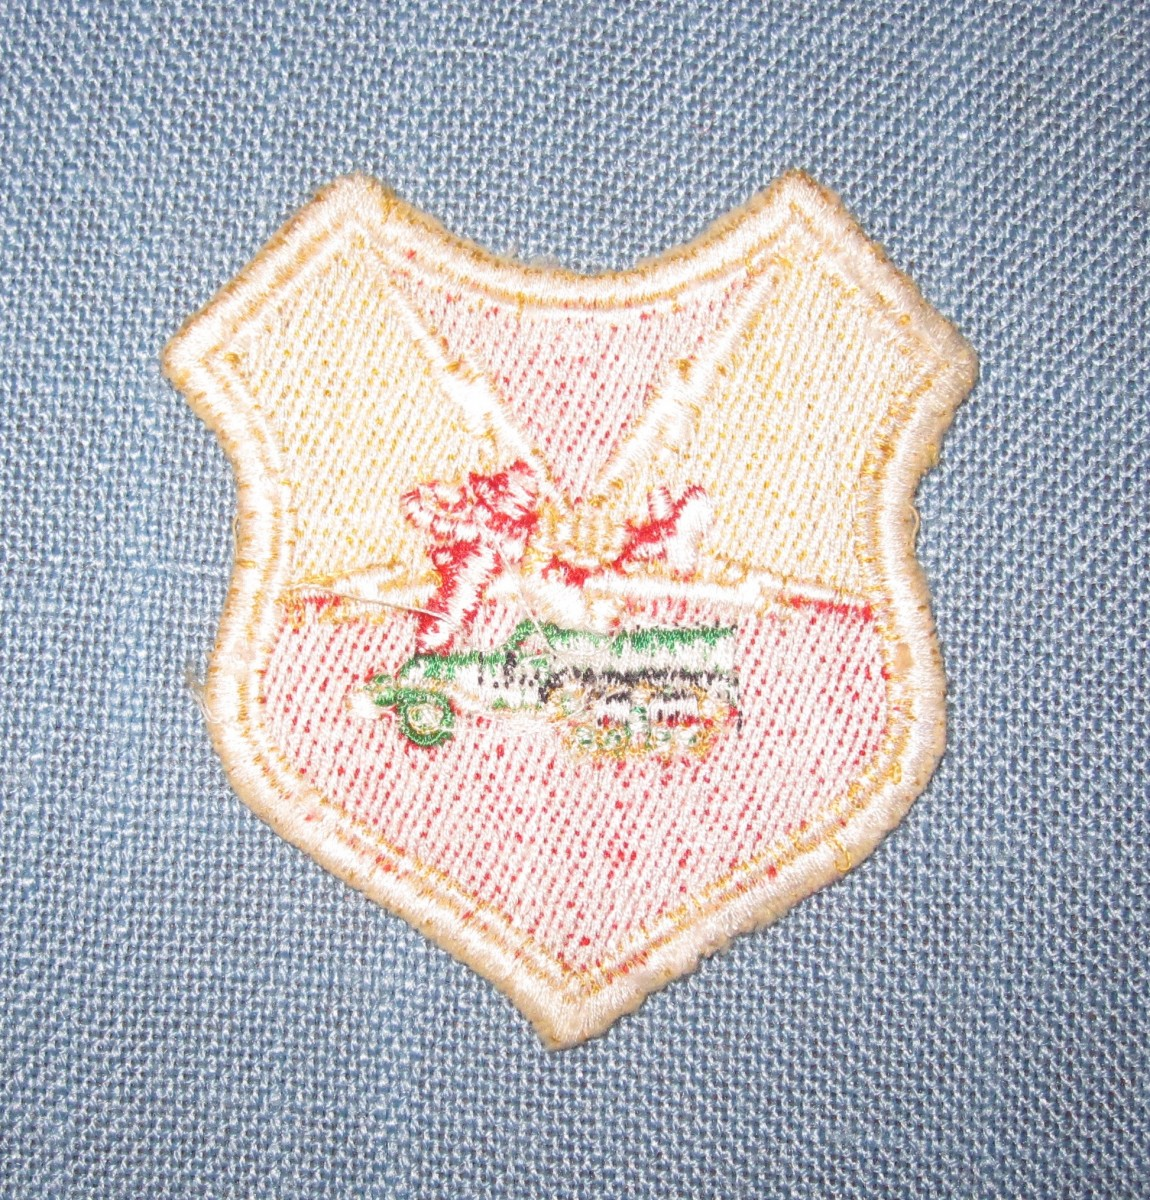 Rare D-Day Unit German Made Patch  SOLD | J  Mountain Antiques